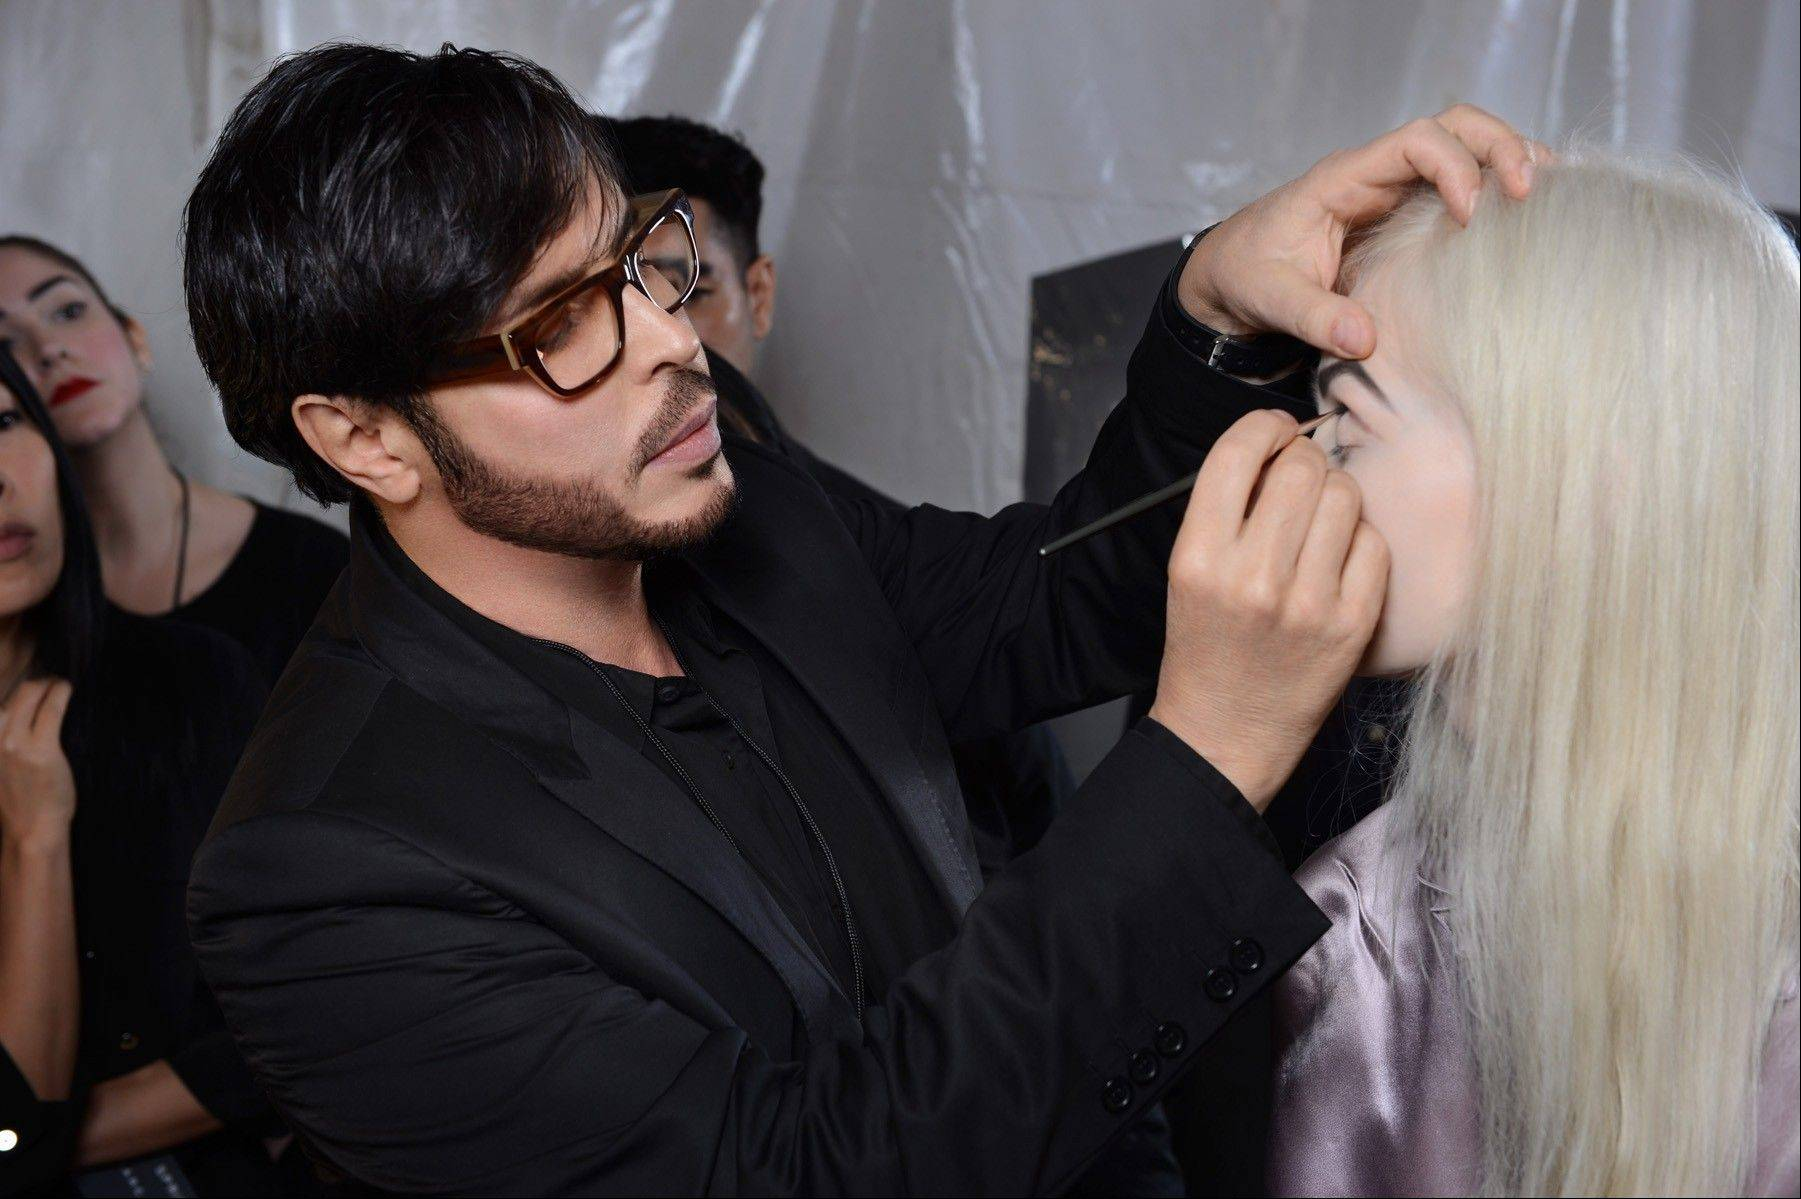 This Sept. 10, 2012 photo shows make-up artist Francois Nars, preparing a model for the Marc Jacobs Spring 2013 collection during Fashion Week in New York. Nars' company has taken on Andy Warhol's silvery Factory, silkscreened superstars and avant-garde films in a limited-edition cosmetic collection, exclusive to Sephora stores until Nov. 1.